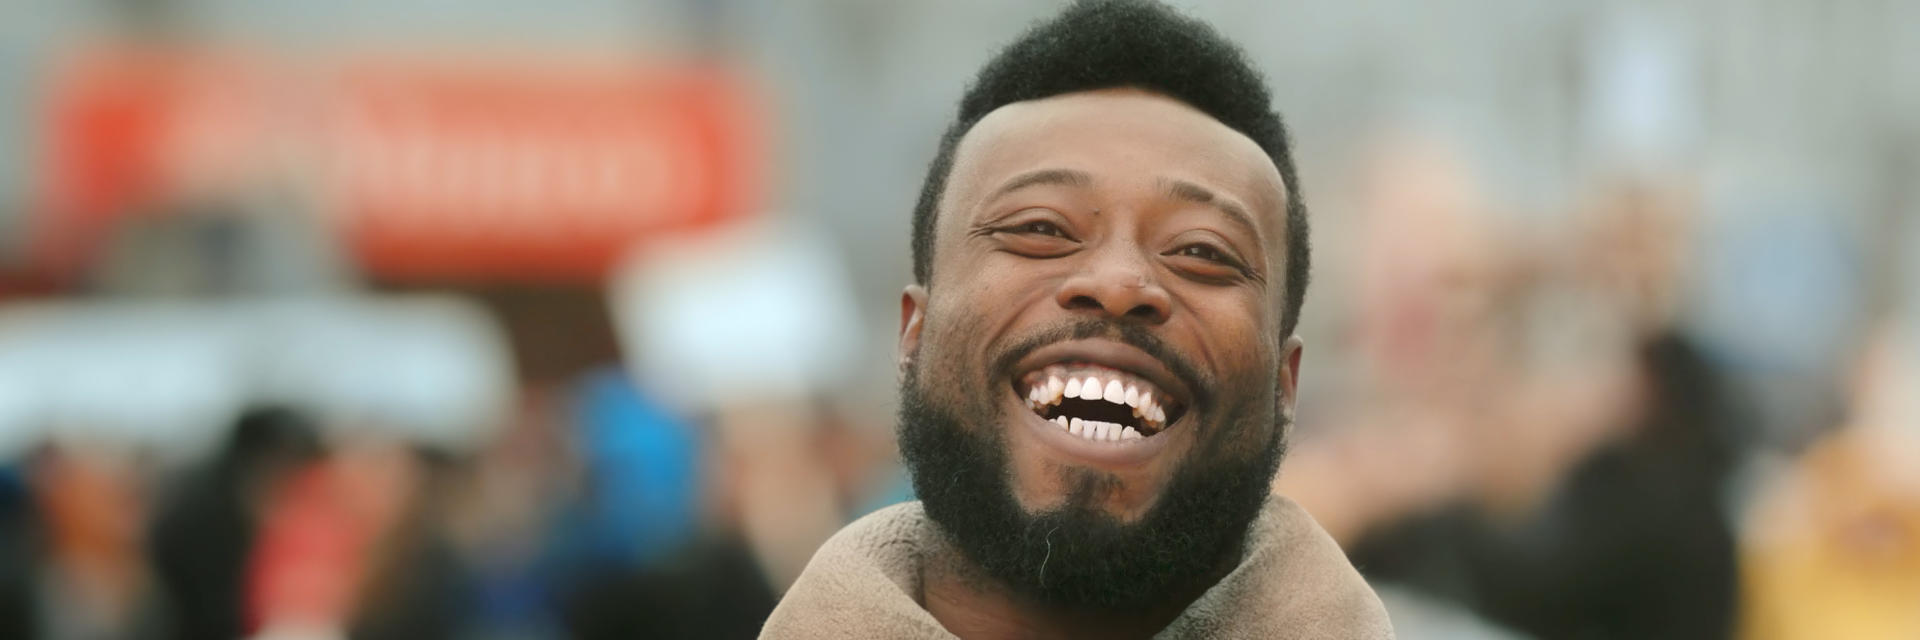 Happy Afro-American man showing nice teeth in his smile.